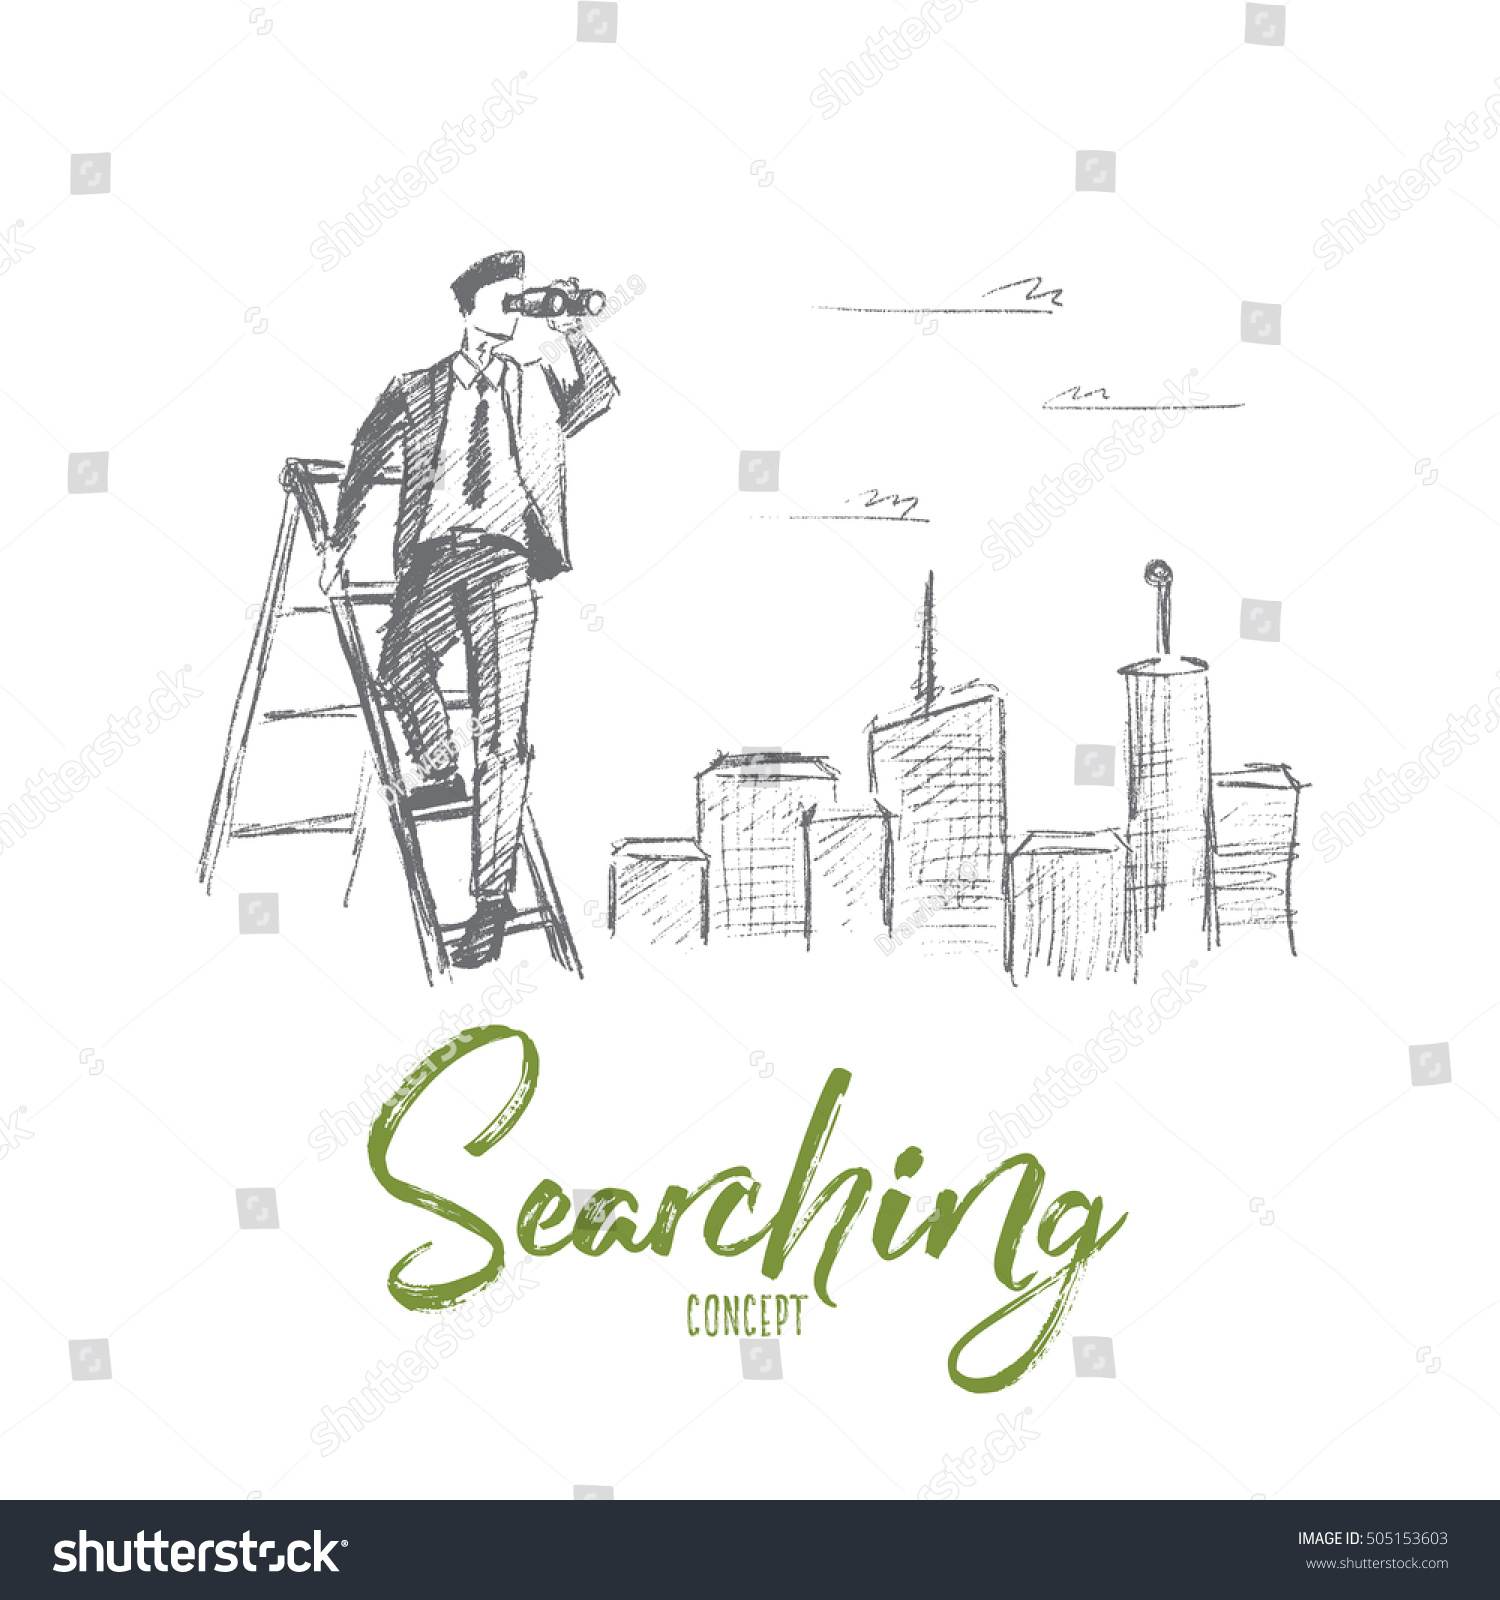 Vector Hand Drawn Searching Concept Sketch Stock Vector HD (Royalty ...